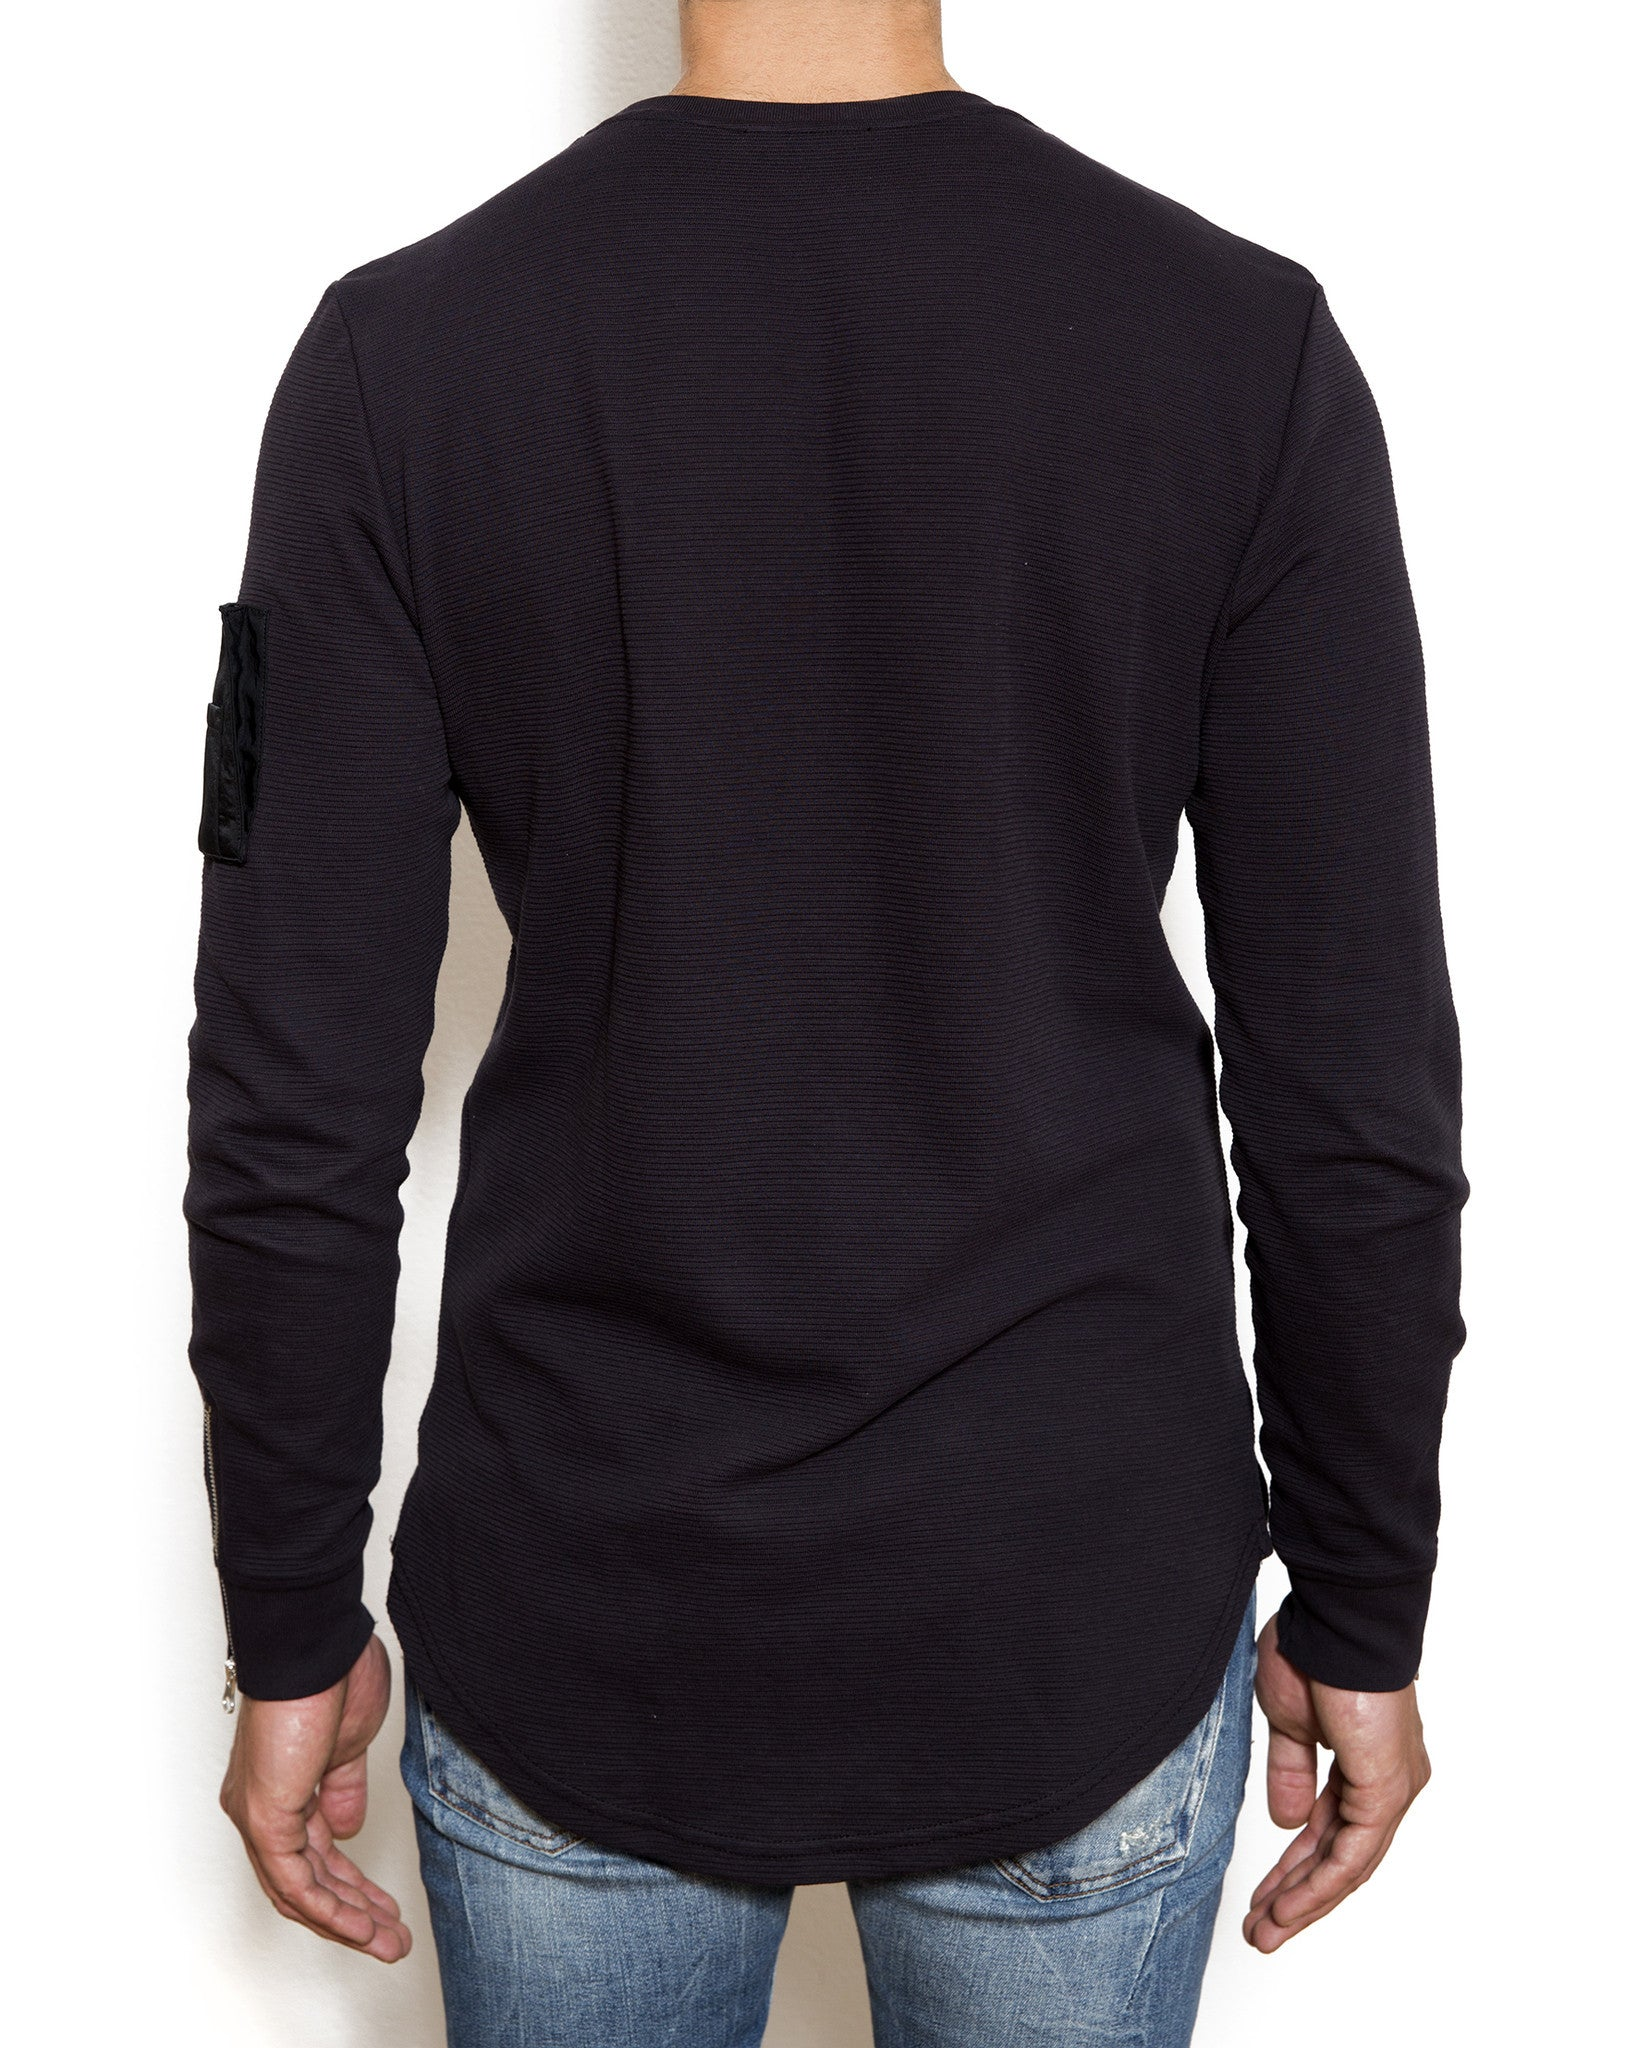 KL2 TEXTURED JUMPER